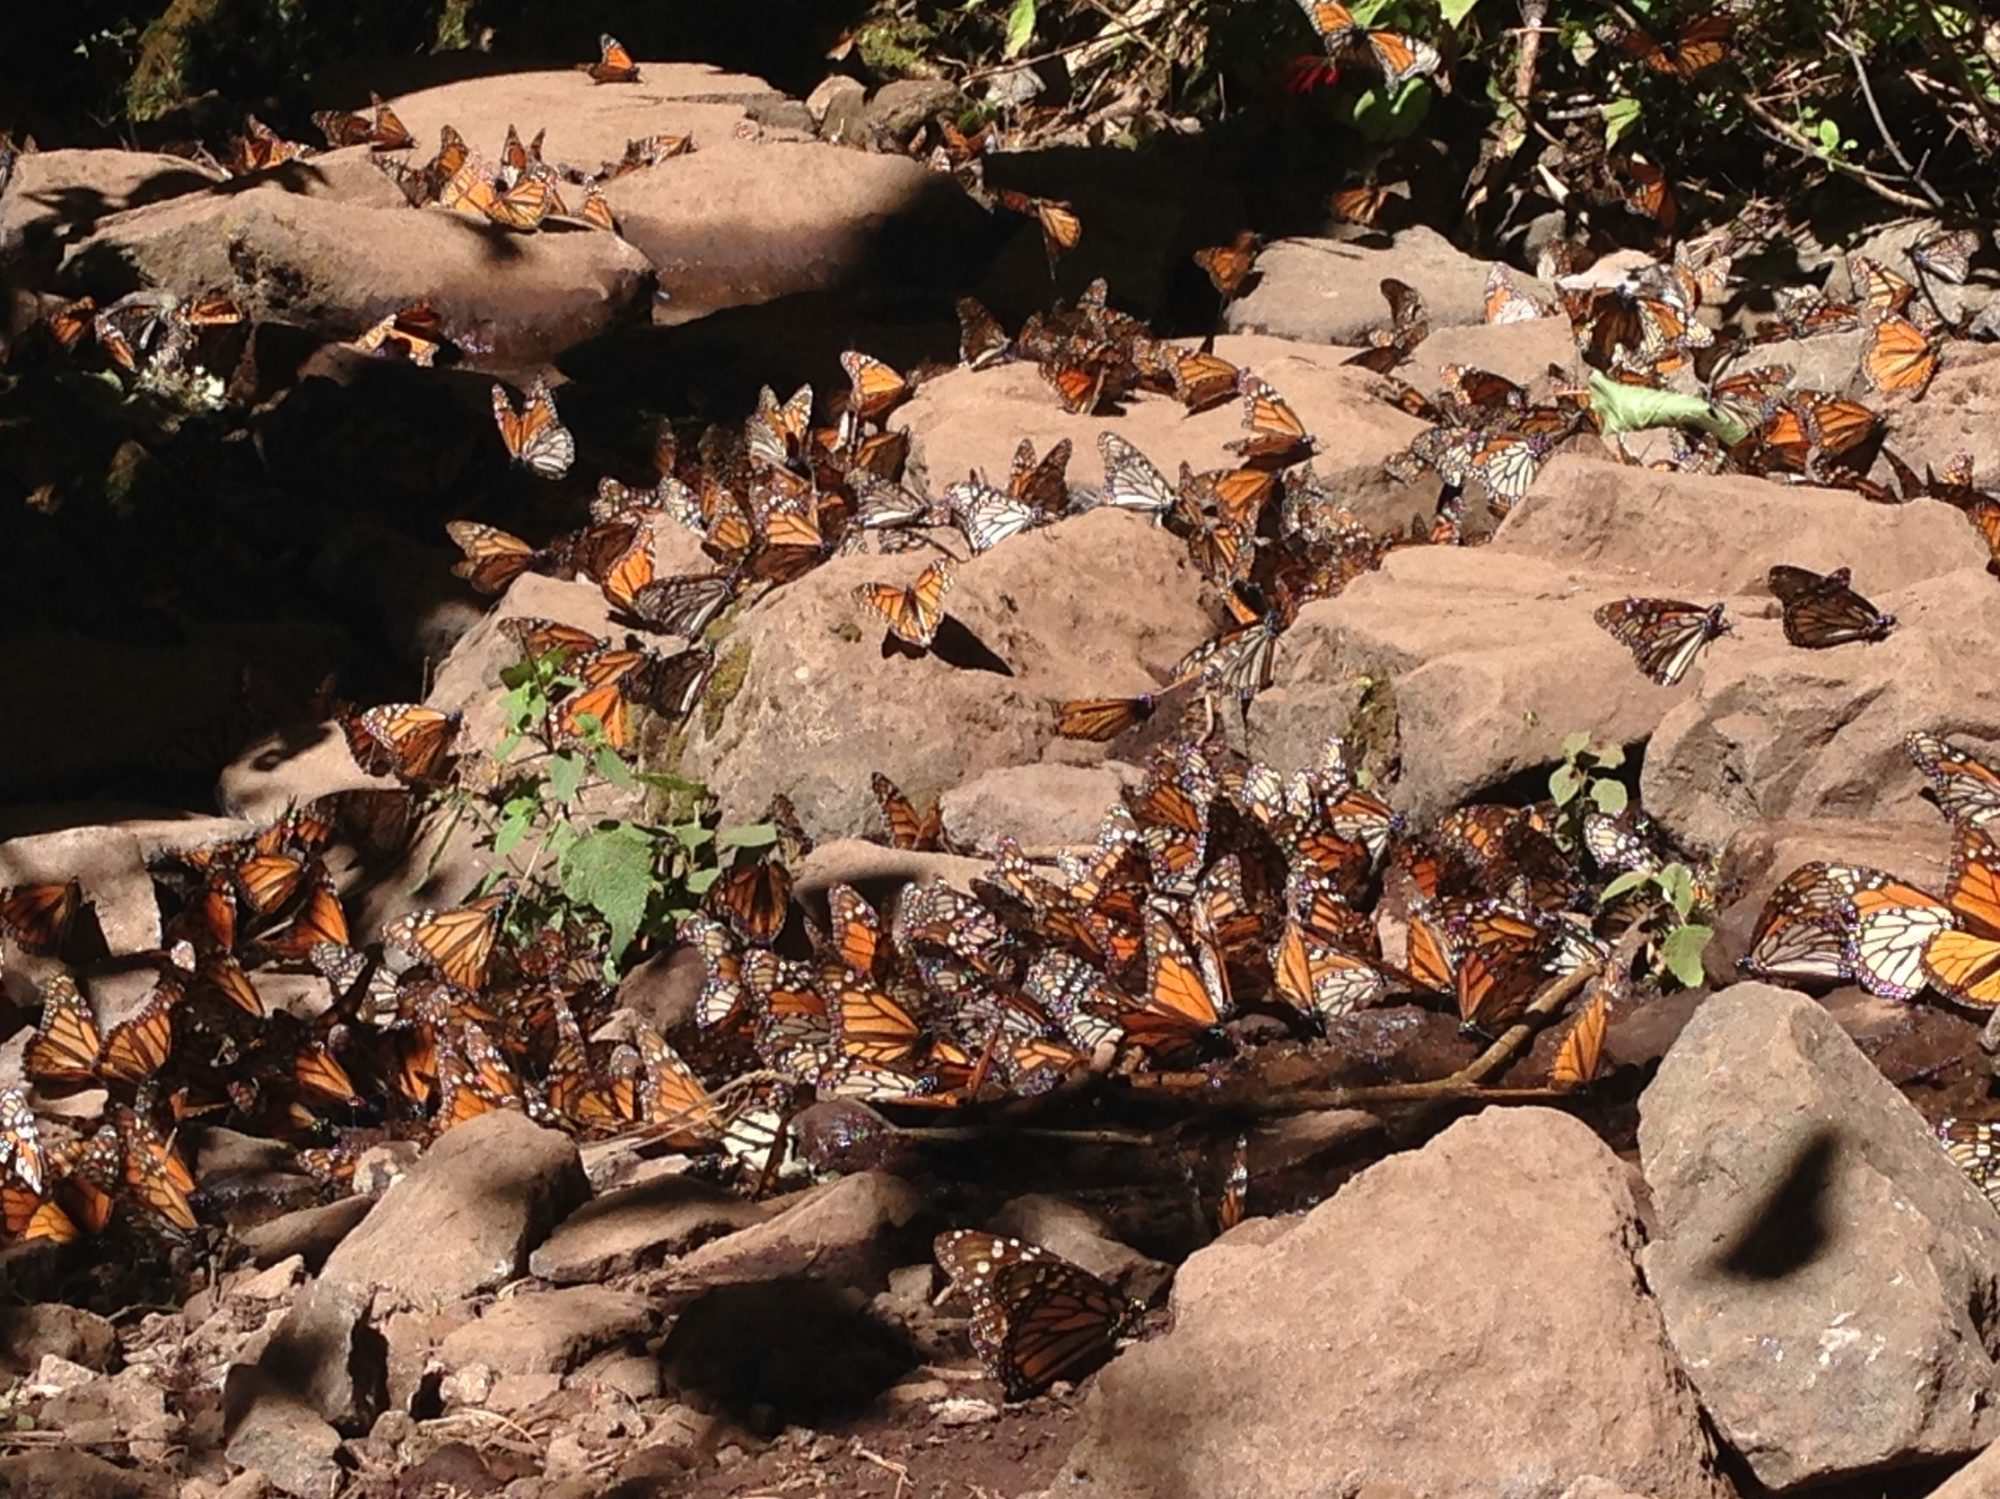 El Sanctuario de la Mariposa Monarca, El Rosario is located 62 miles northwest of Mexico City in the state of Michoacán. Here literally millions of Monarch butterflies overwinter on part of their four generation trek between Mexico and Minnesota